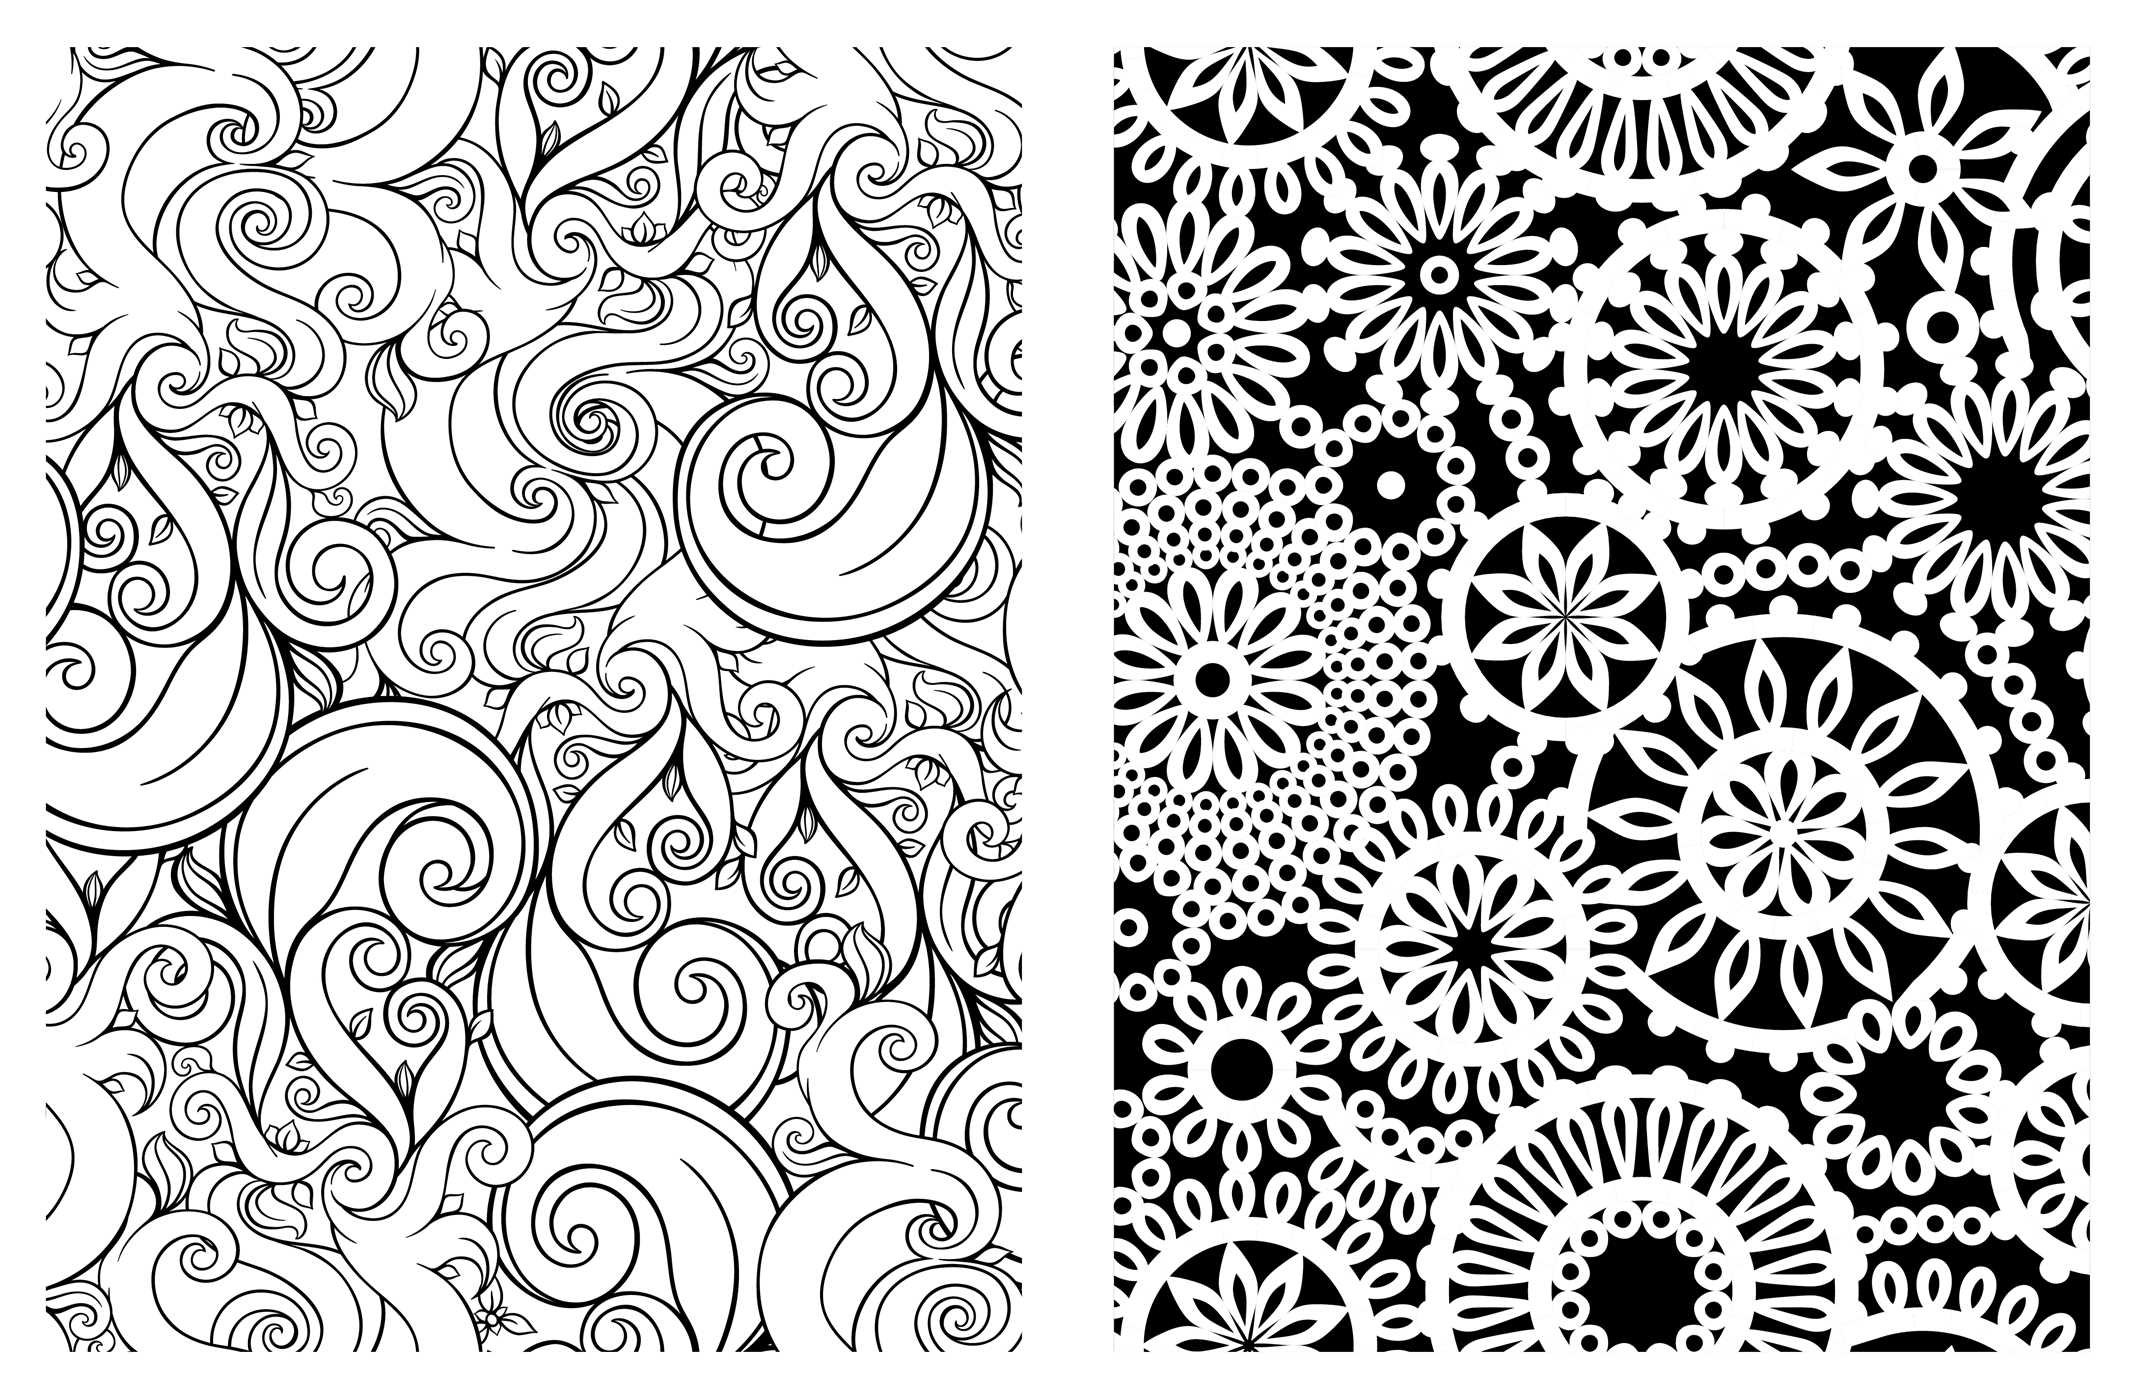 Amazon Posh Adult Coloring Book Pretty Designs For Fun Relaxation Books 9781449458751 Andrews McMeel Publishing